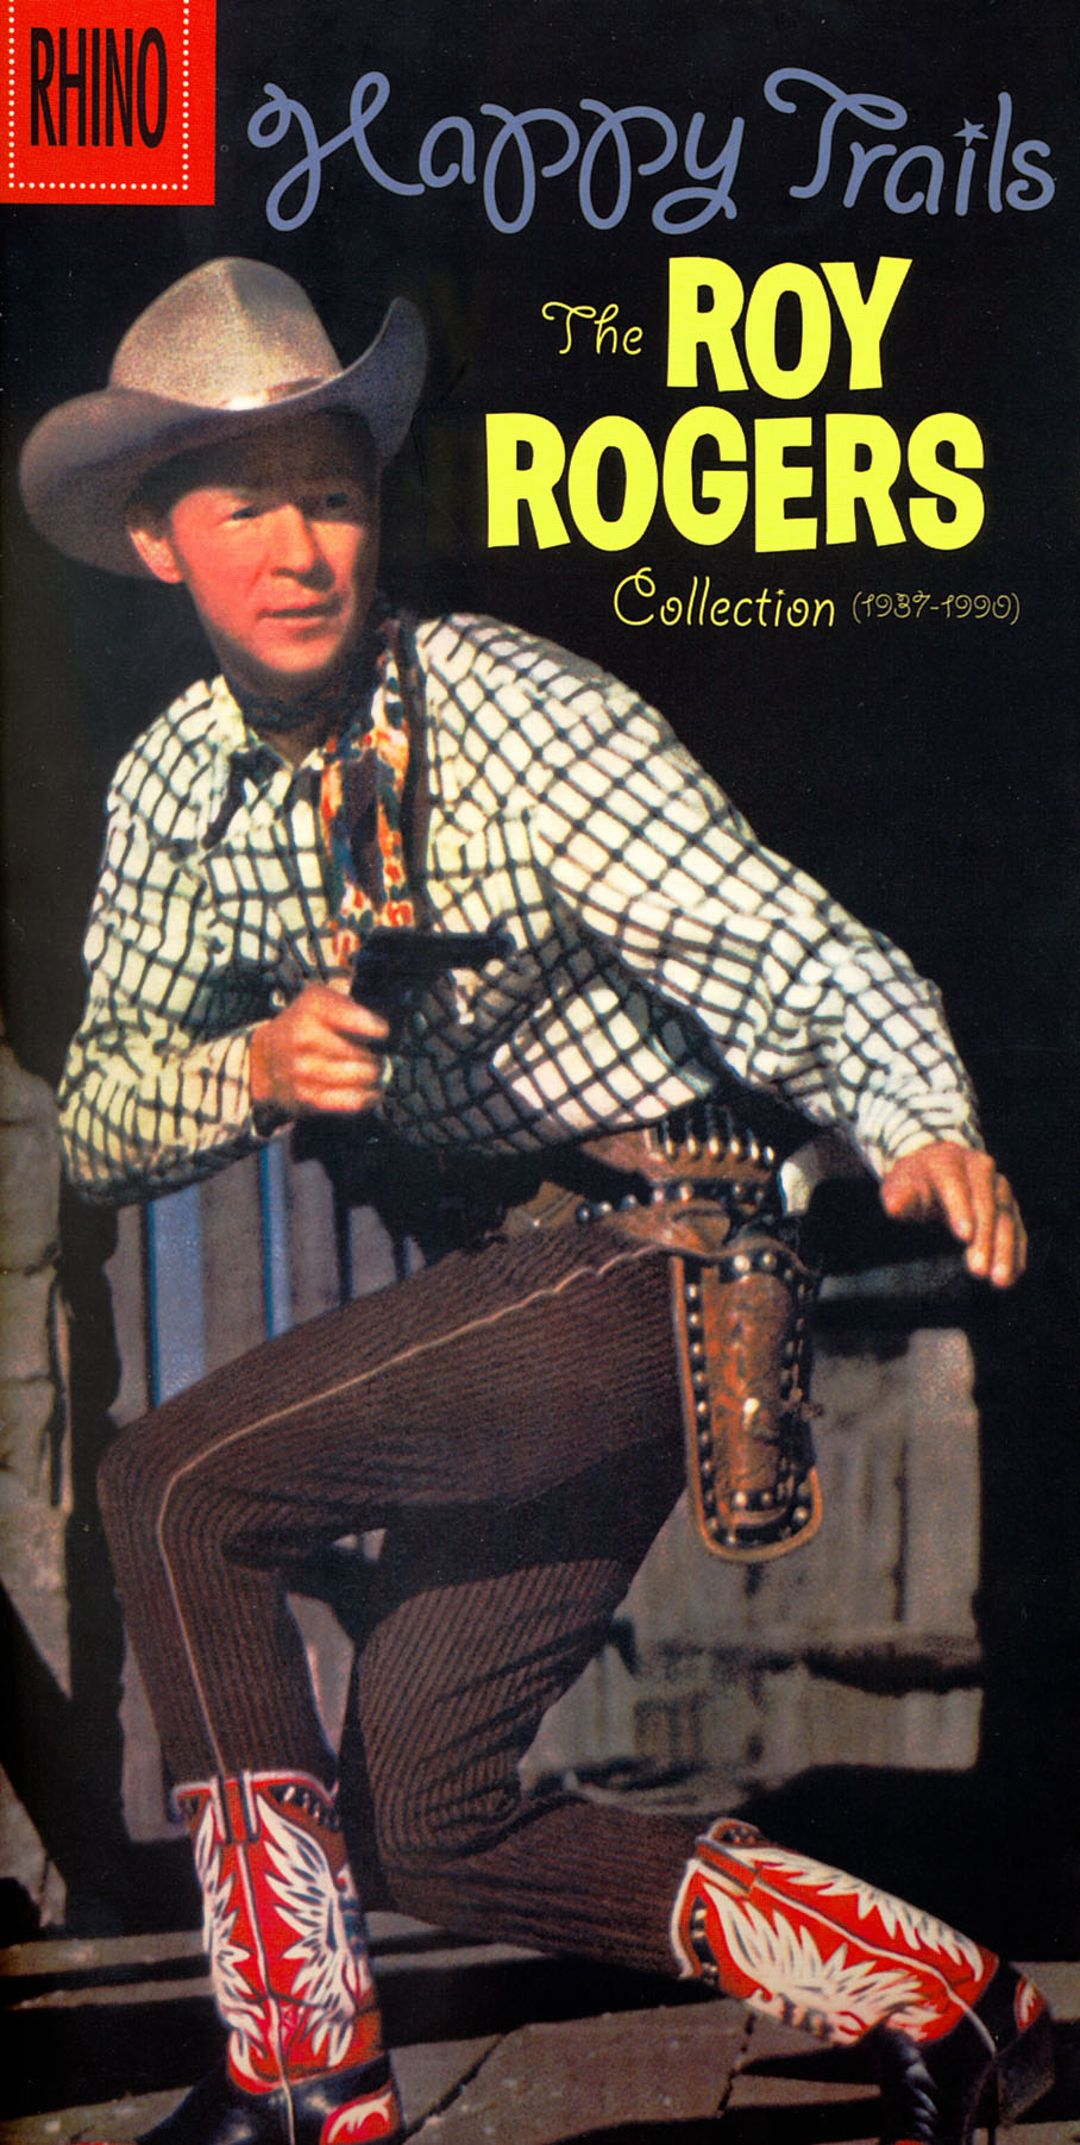 Happy Trails: The Roy Rogers Collection 1937-1990